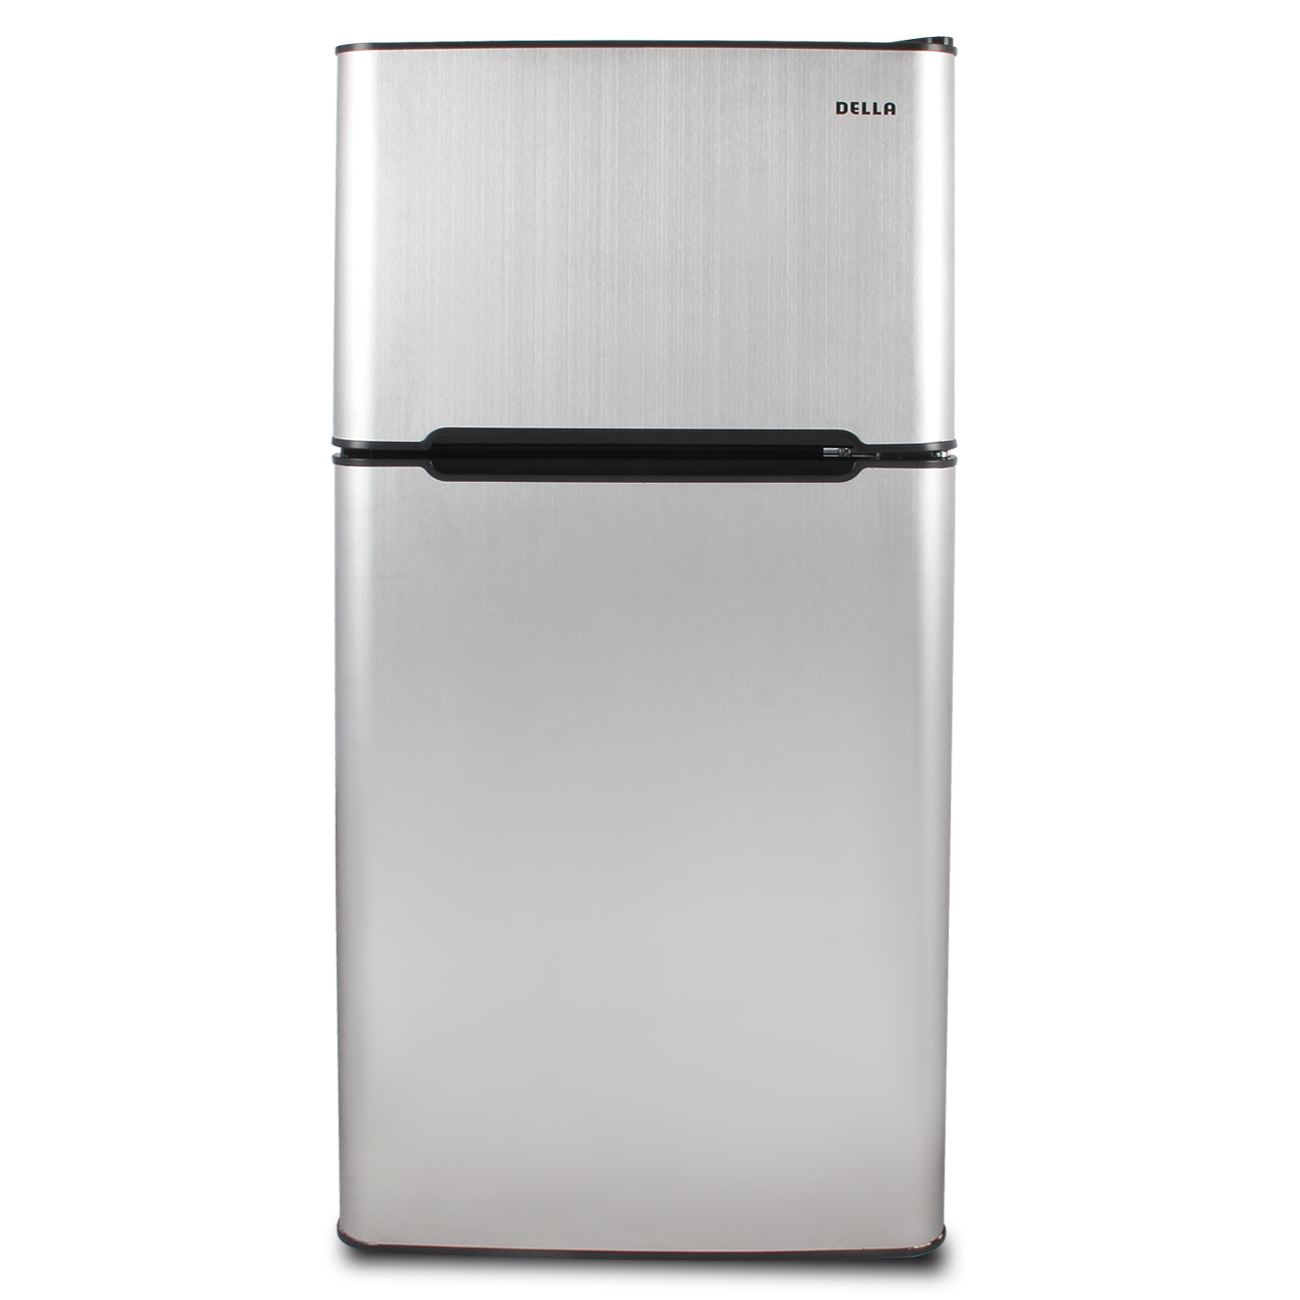 Stainless Steel Refrigerator Small Freezer Cooler Fridge